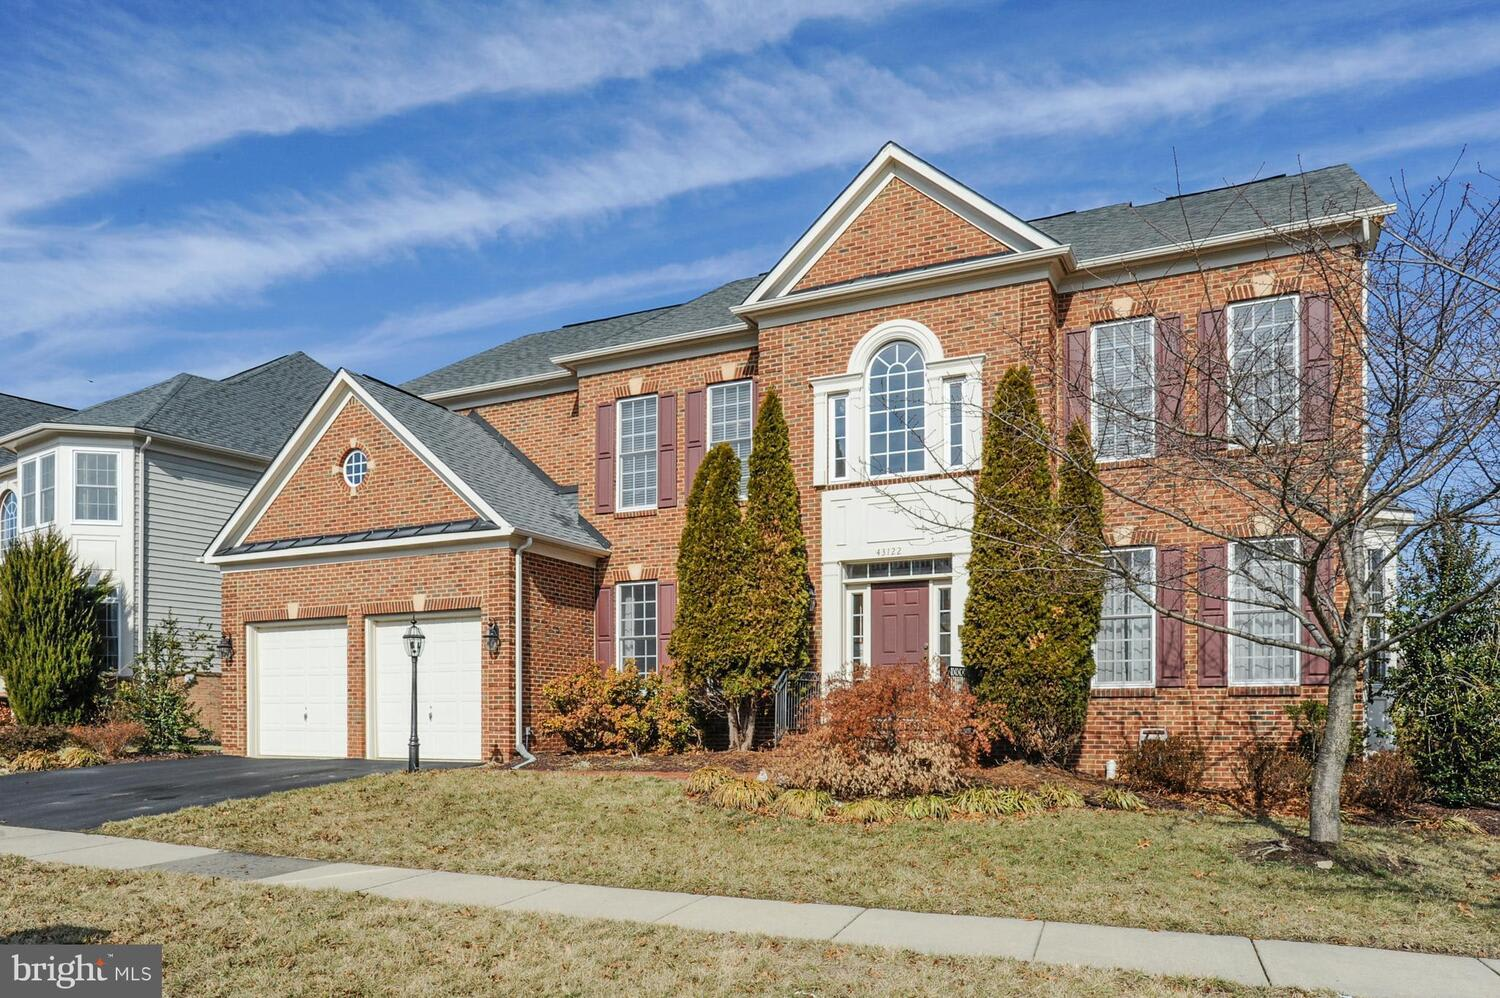 43122 Kingsport Dr photo